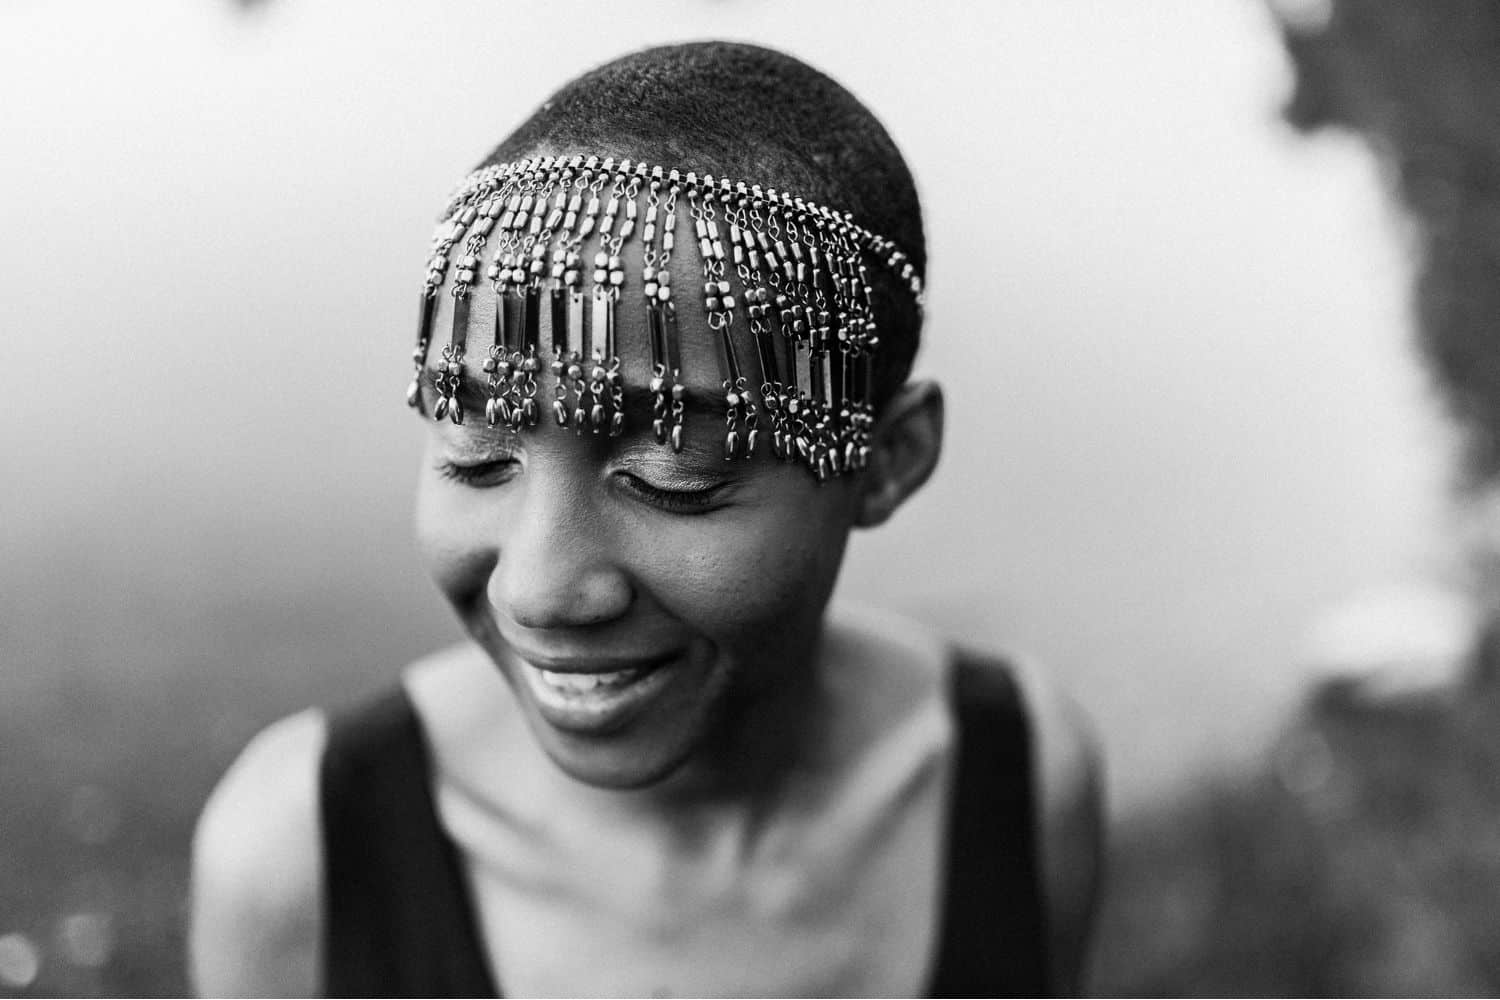 """Drop the Obsession with """"Pretty"""" Portrait Photography: Monochrome portrait of elegant Black woman photographed close-up with her eyes gently closed and a smile on her face. She wears a beaded headpiece and stands before a quiet pond. Photographed by Mae B."""